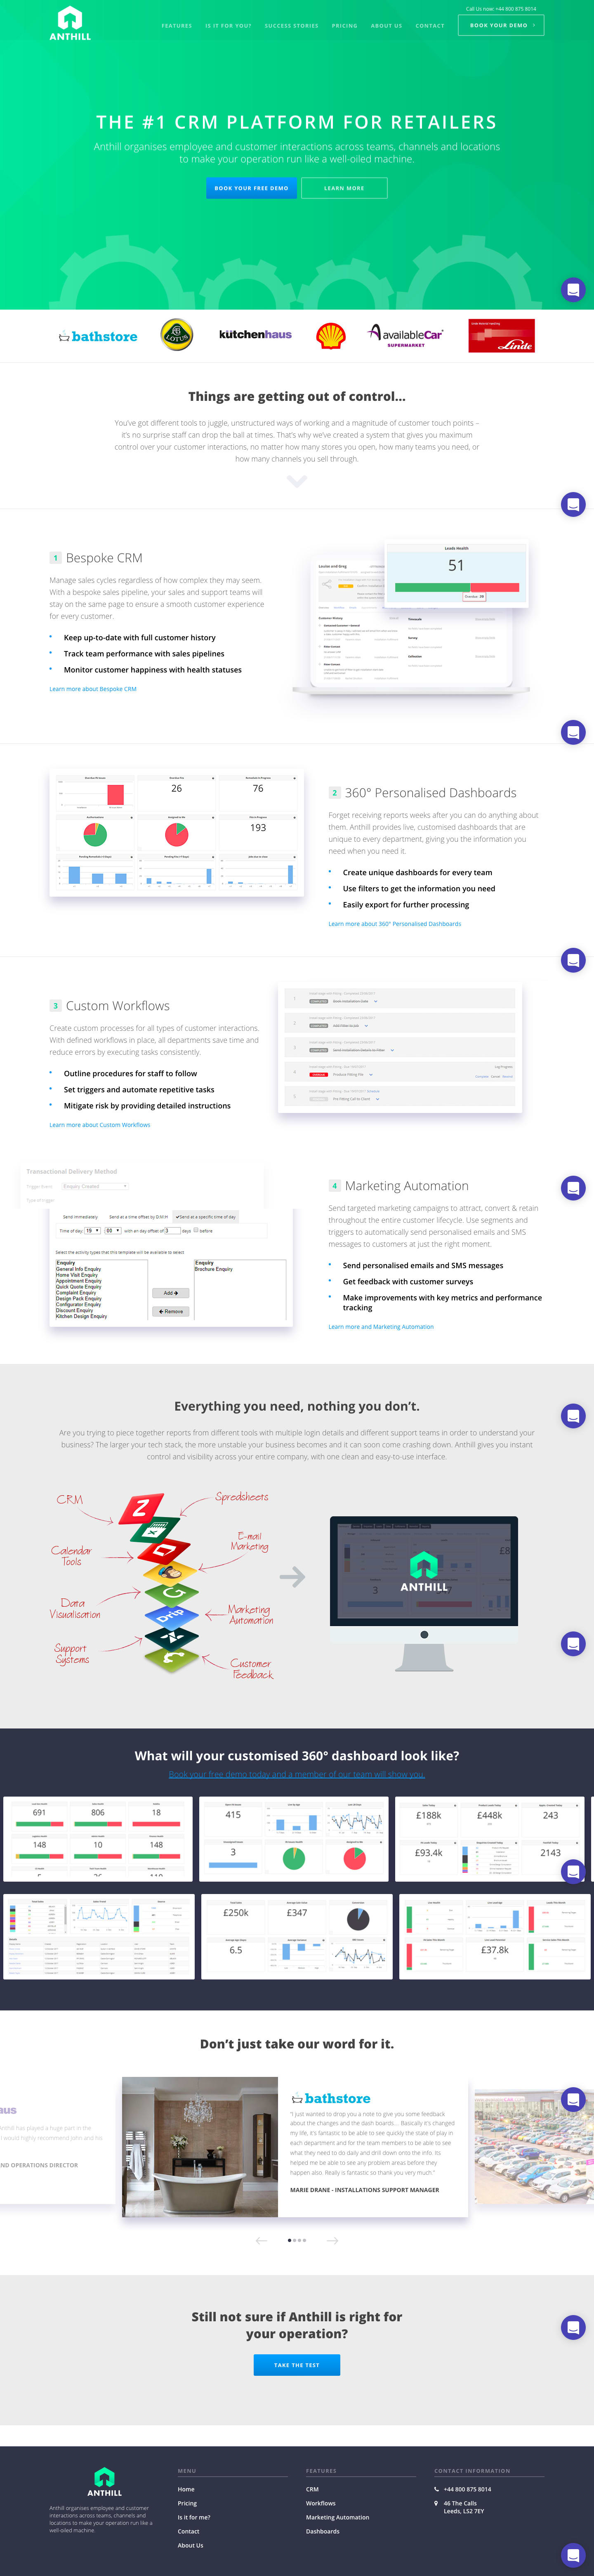 Anthill CRM landing page